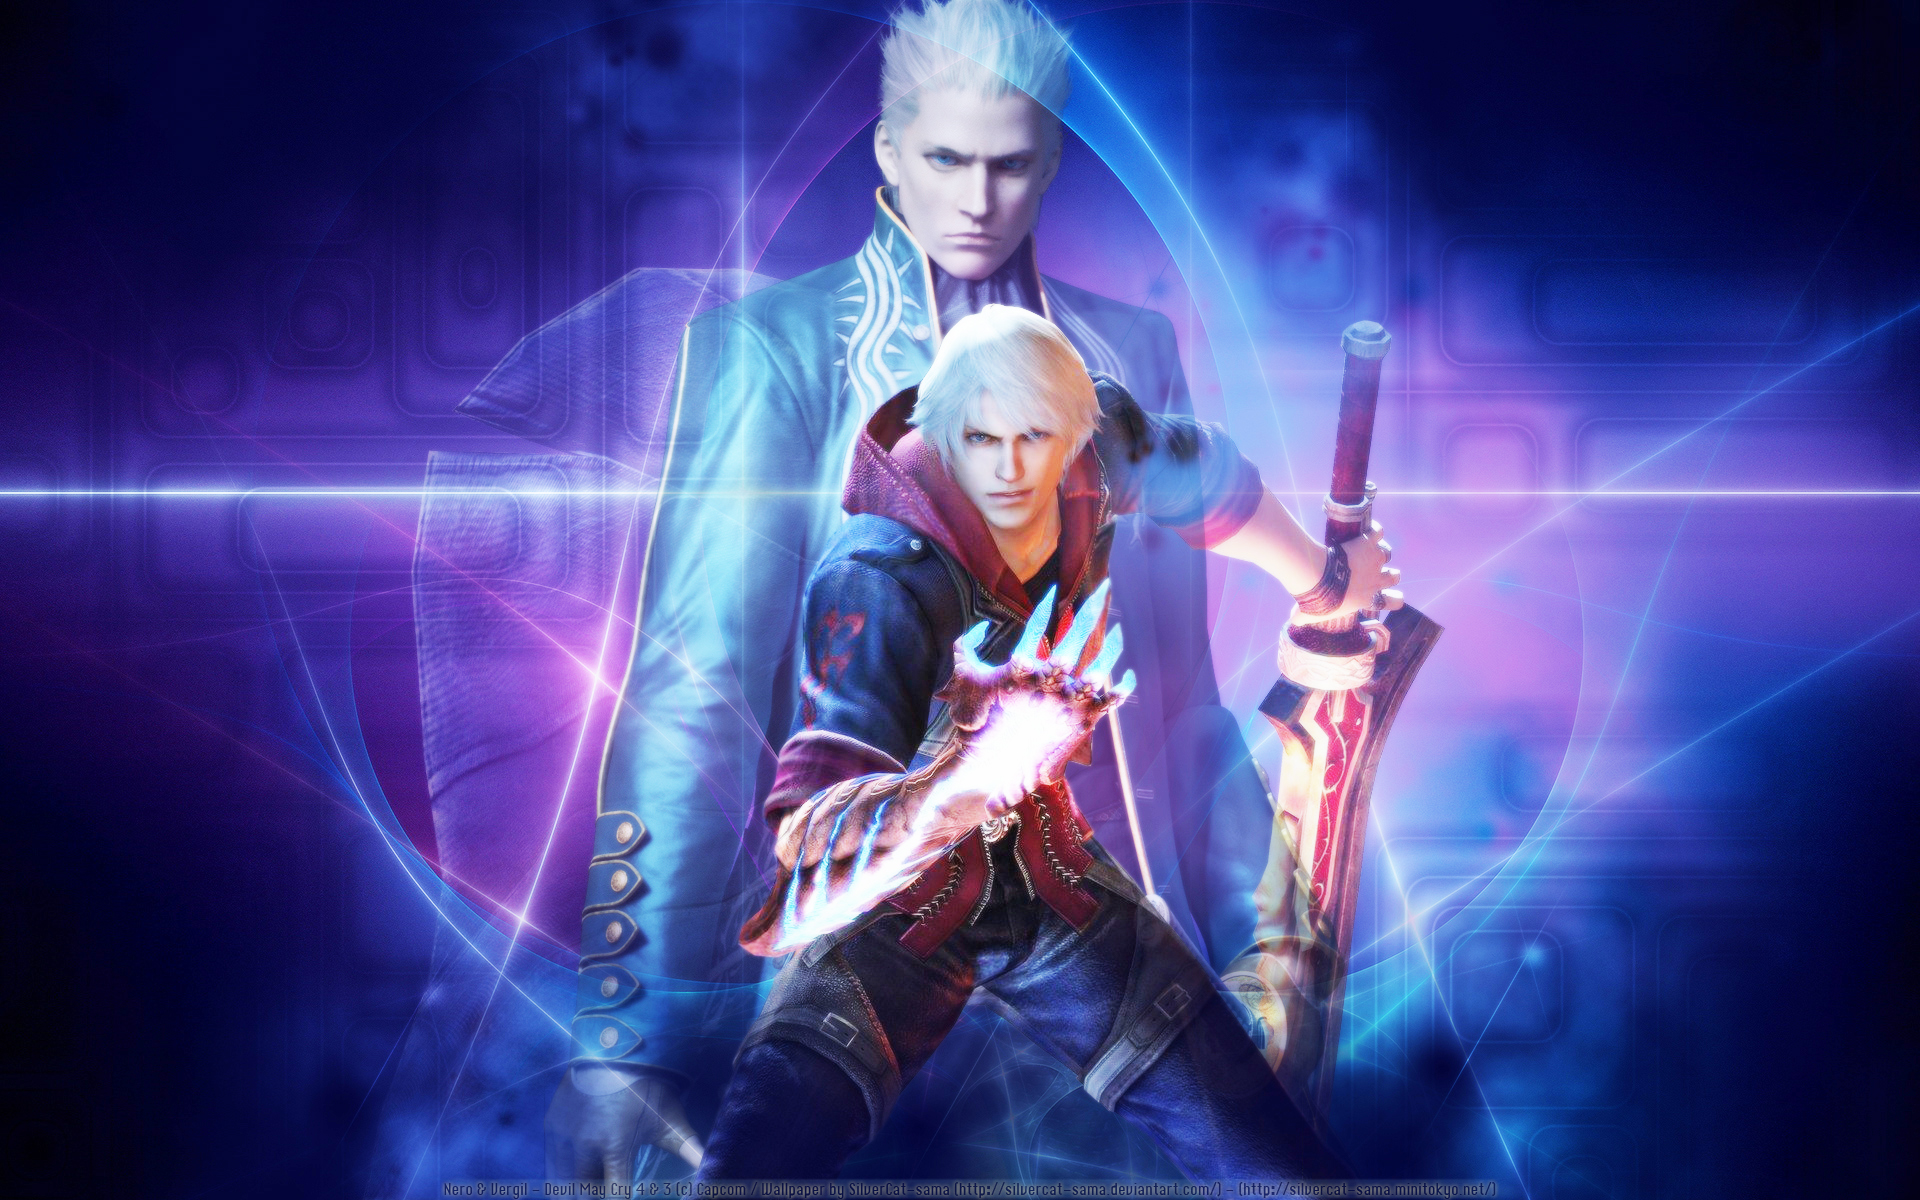 Devil May Cry Wallpaper One Soul Minitokyo